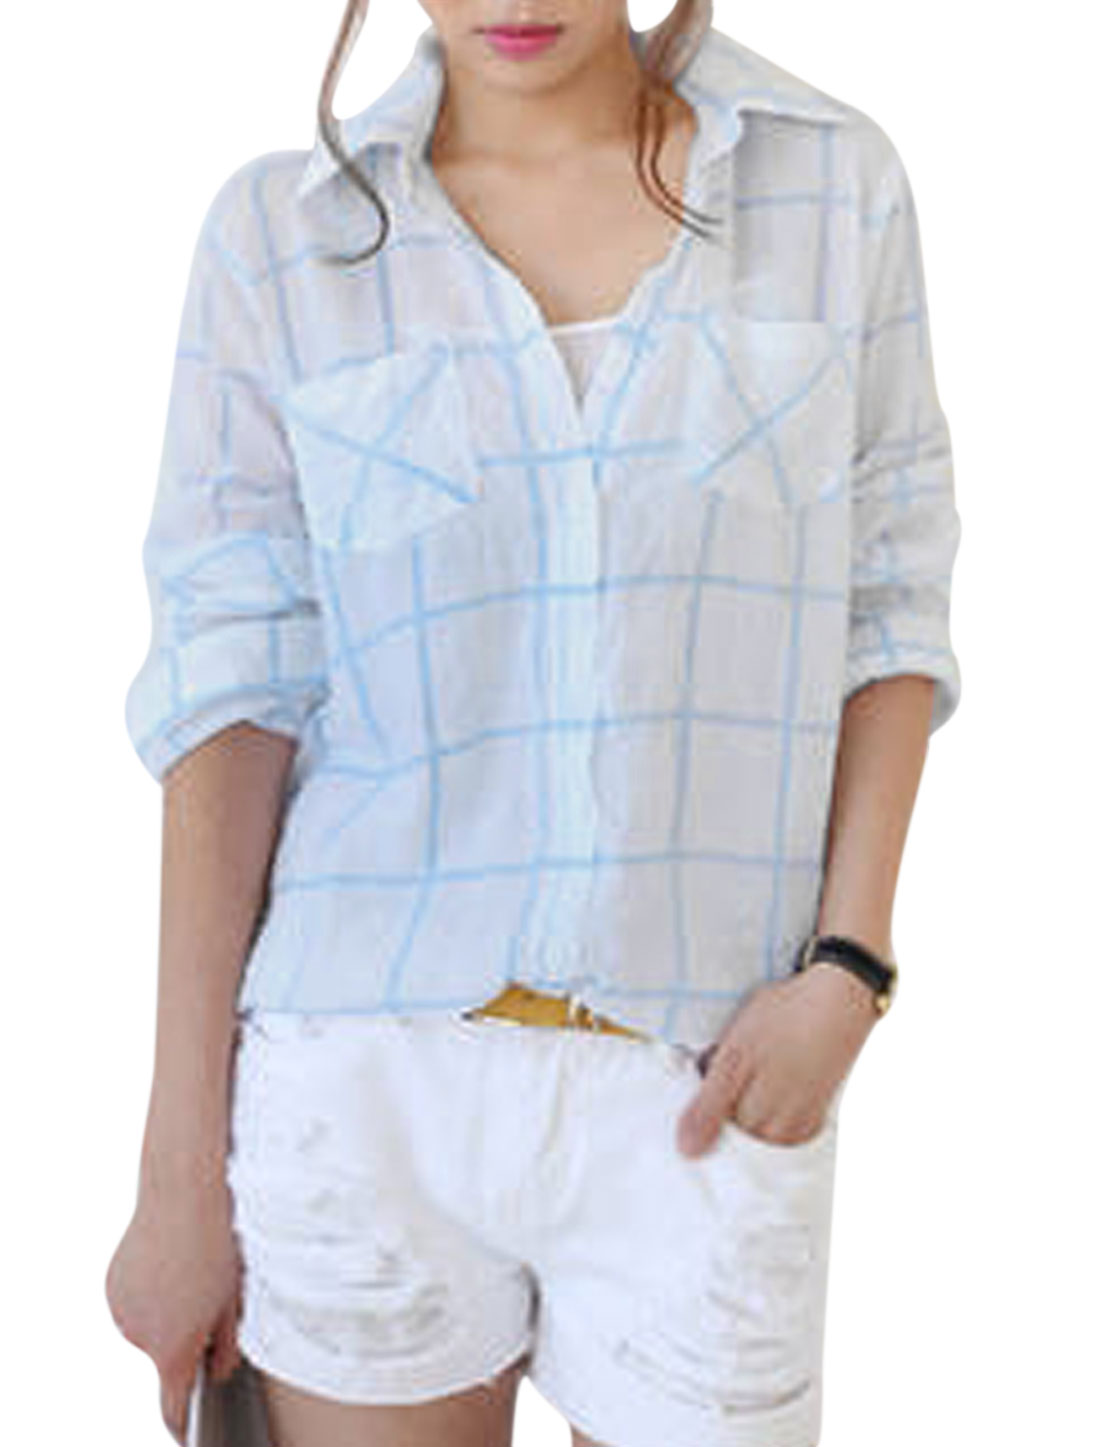 Lady Plaids Pattern Single Breasted Low-High Hem Semi Sheer Shirt White S